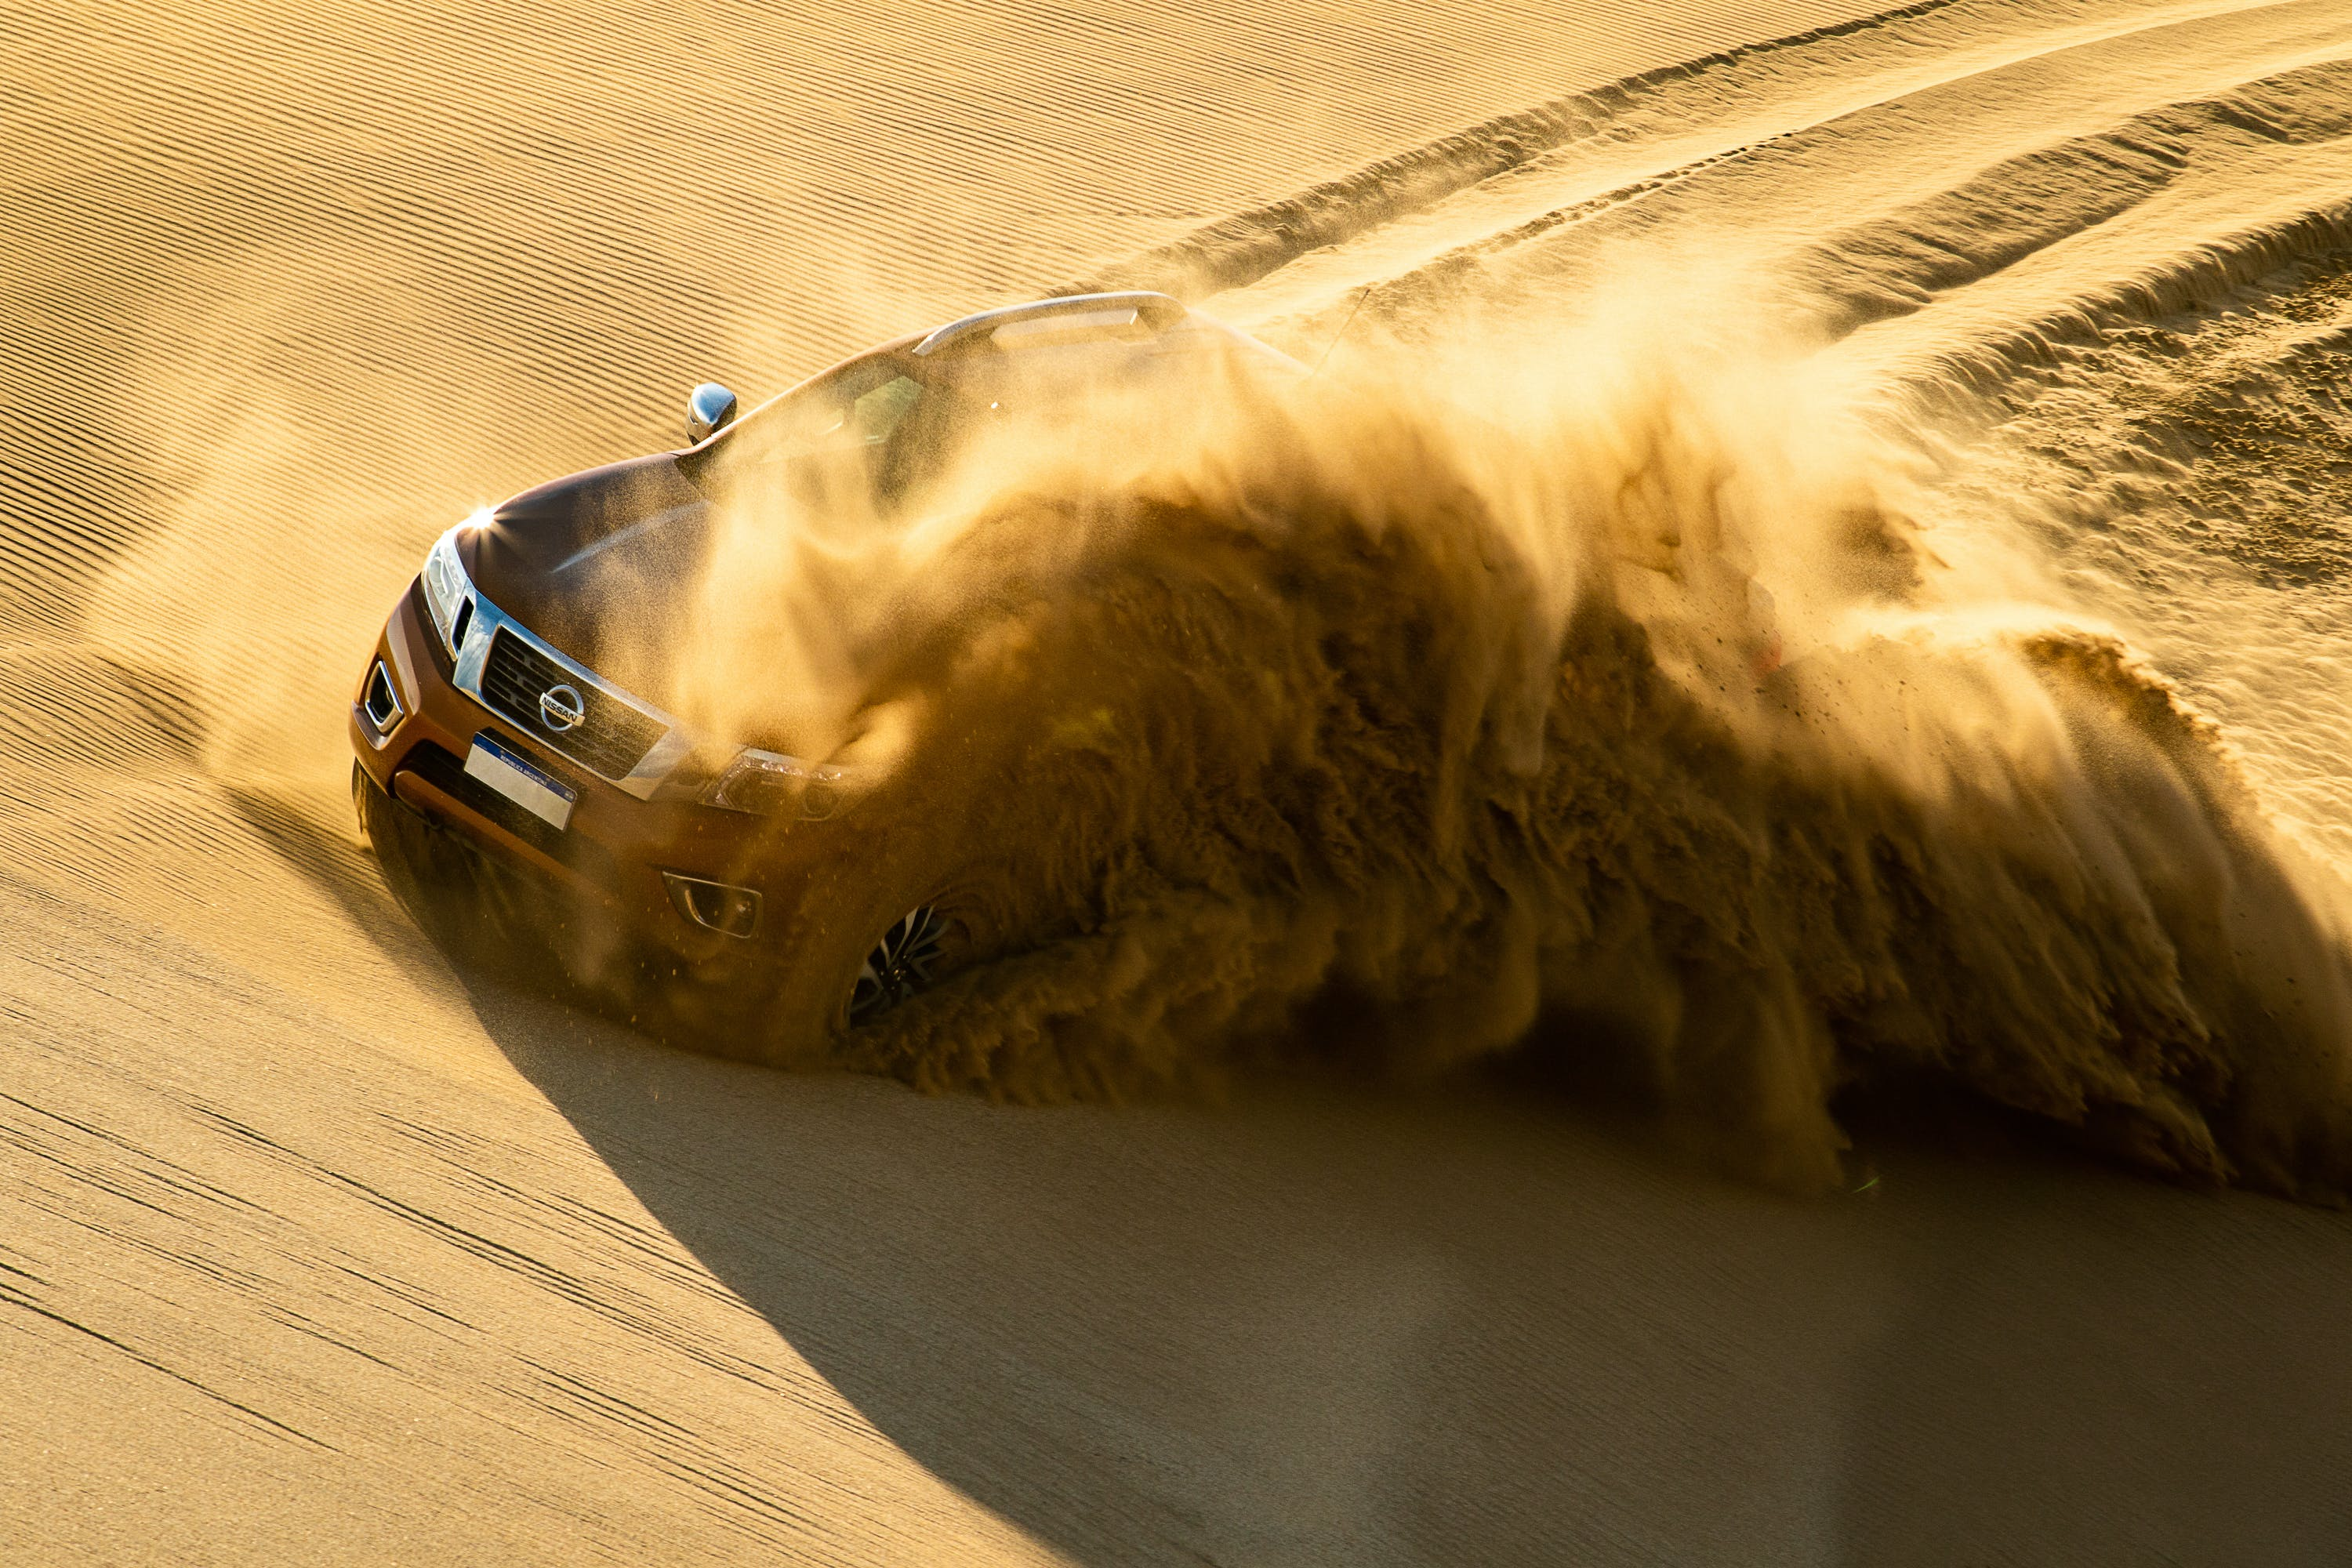 Red Nissan Vehicle Running on Sand Dune